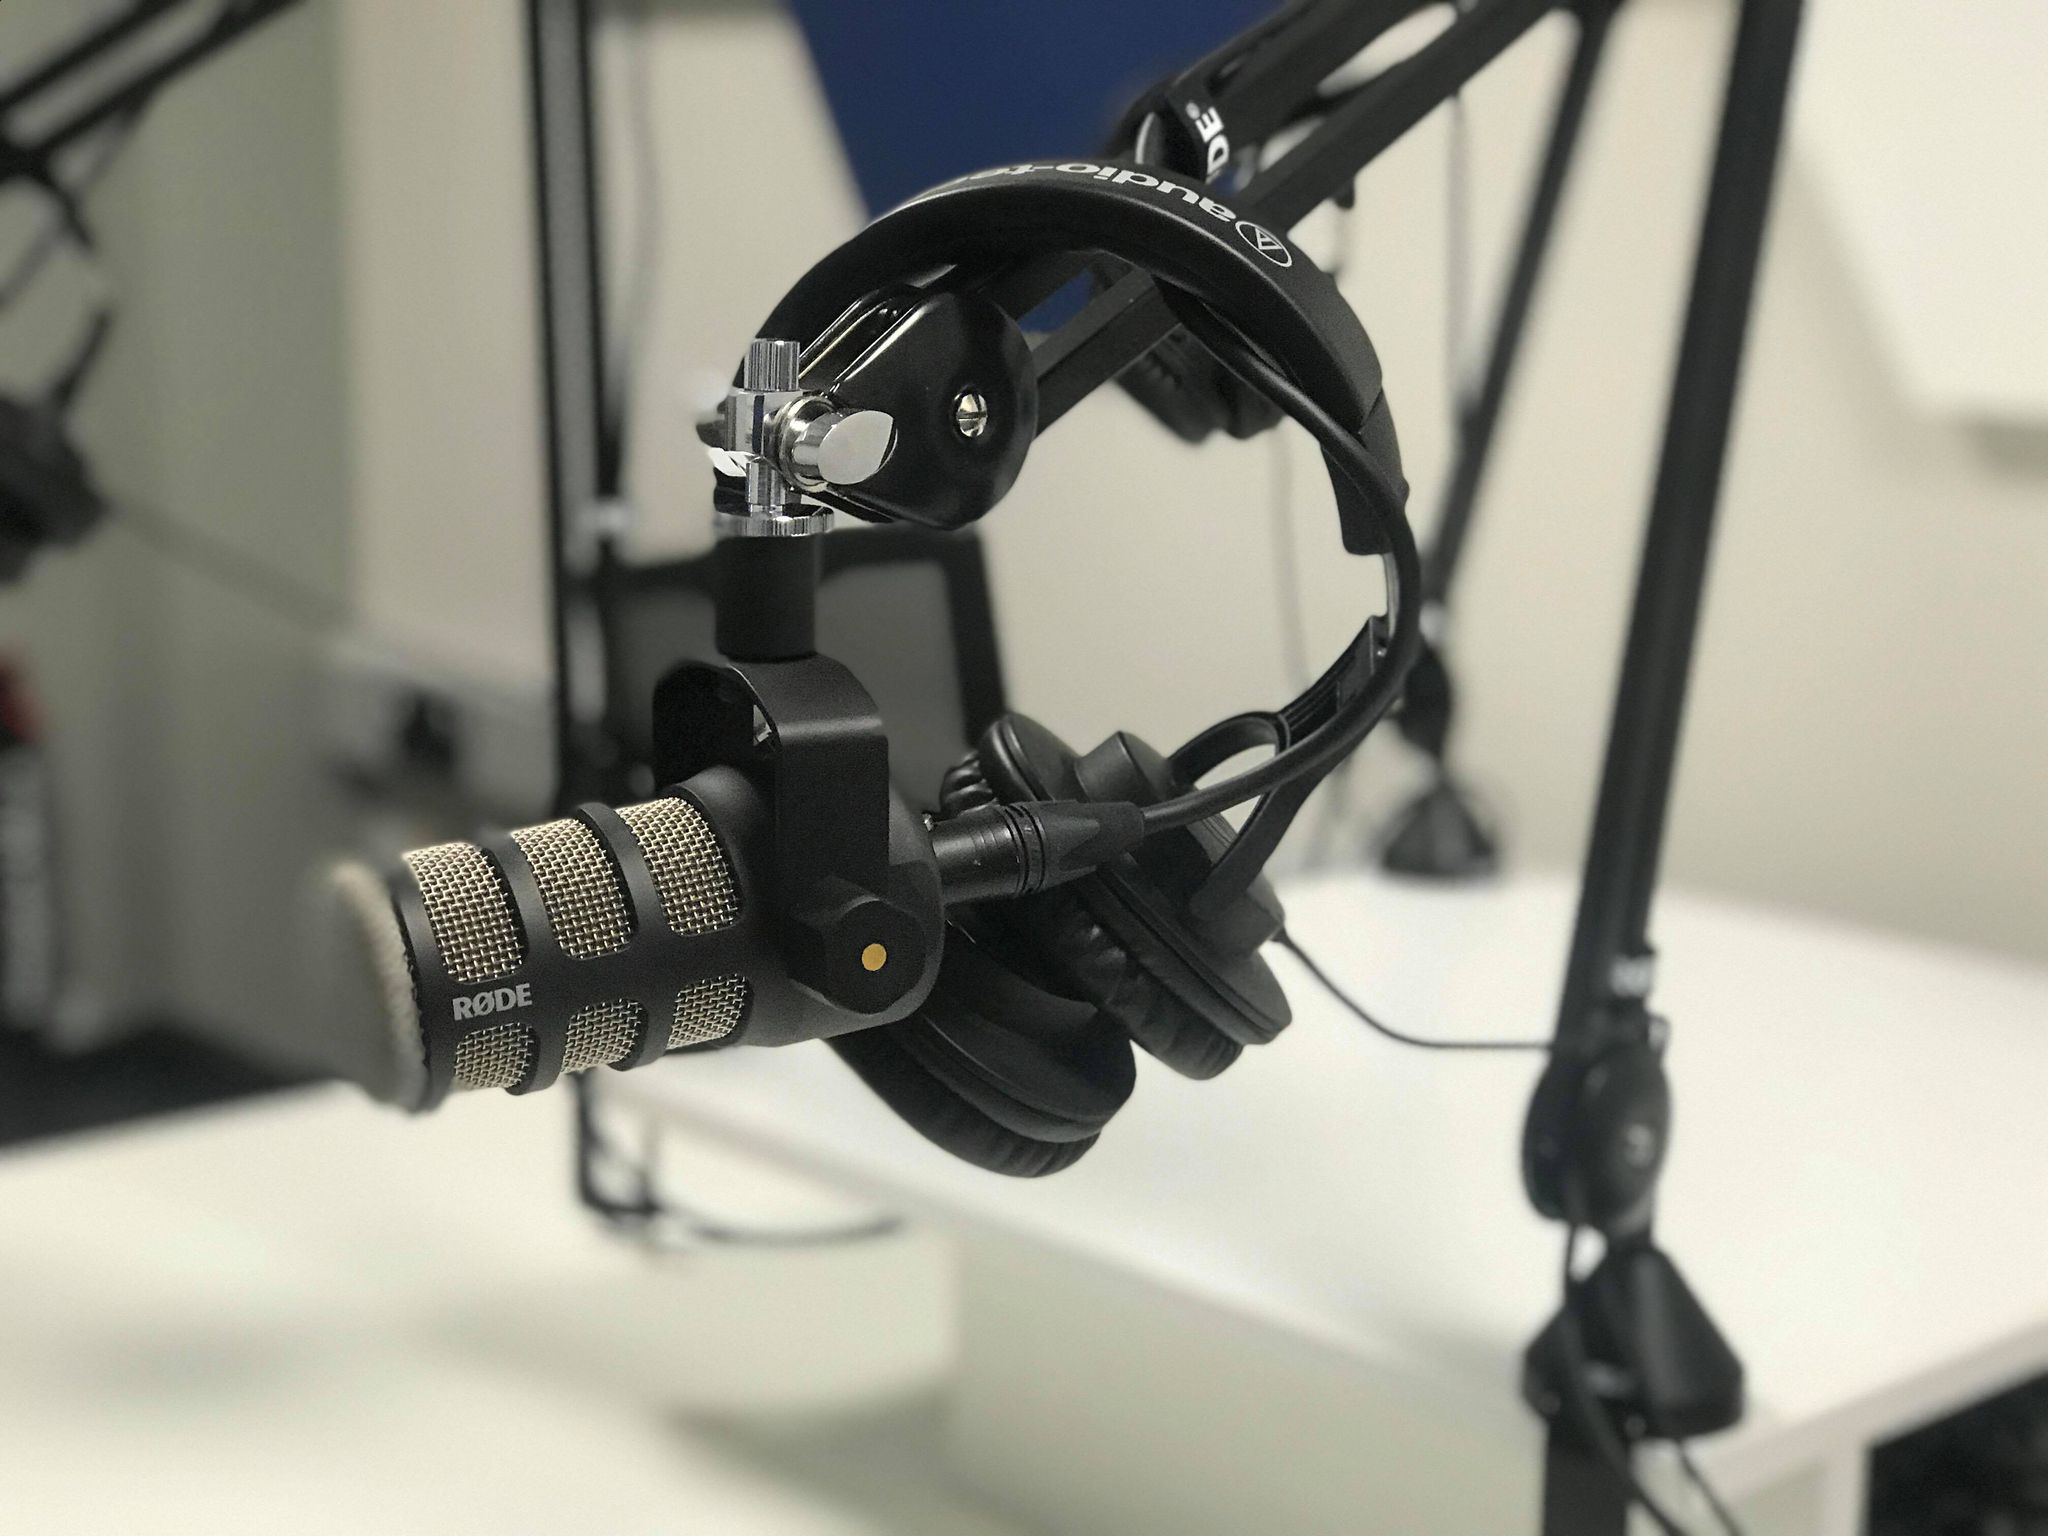 Granite Podcast Newry, located in Granite Exchange, NI Business Podcasting - Newry newspaper